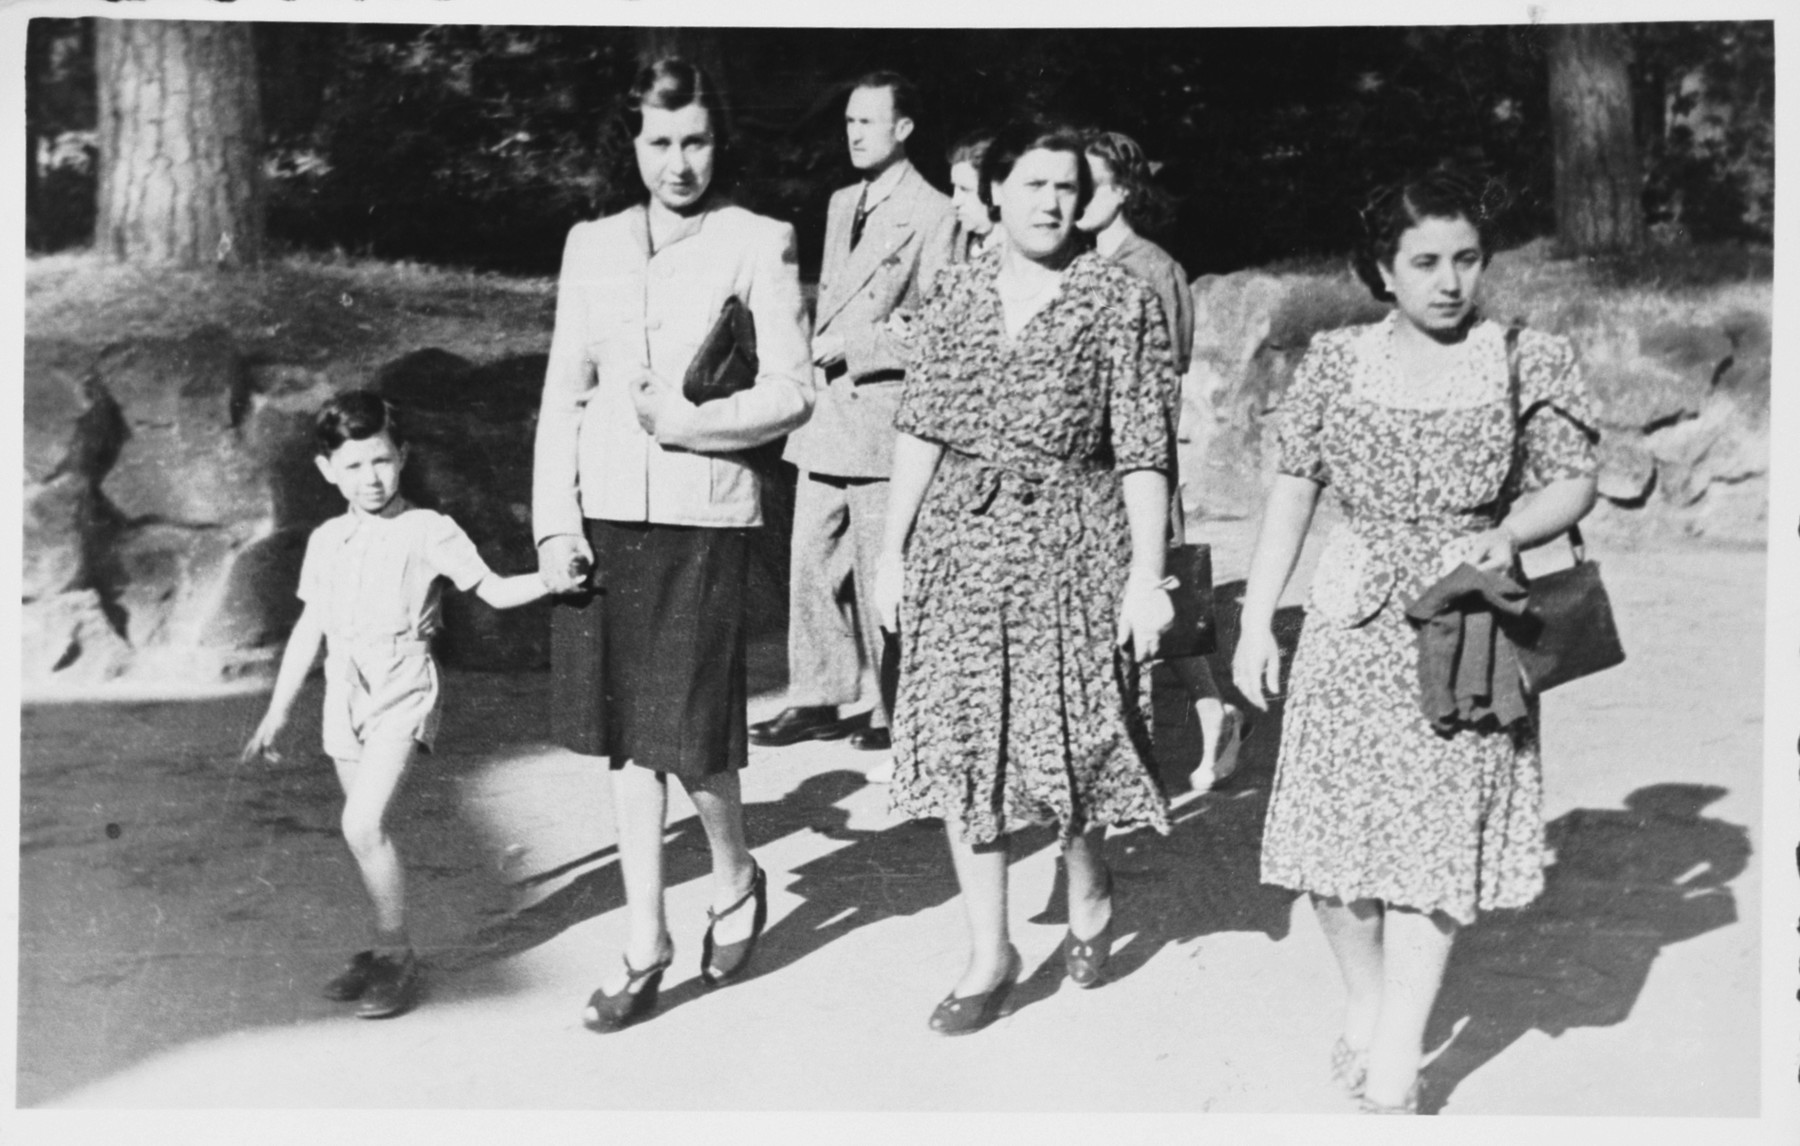 Cristina Frascatani  walks down the street with a group of Jewish friends including two whom she hid during the war.  From left to right are Giancarlo Spizzichino holding the hand of Irma Pesci.  Cristina Frascatani (Giancarlo's rescuer) is in the center.  Wilhelma Spagnoletto, the aunt of Giancarlo, is on the right.    Wilhelma was also hidden by Cristina Frascatani, as was her husband, Mario Abbina.